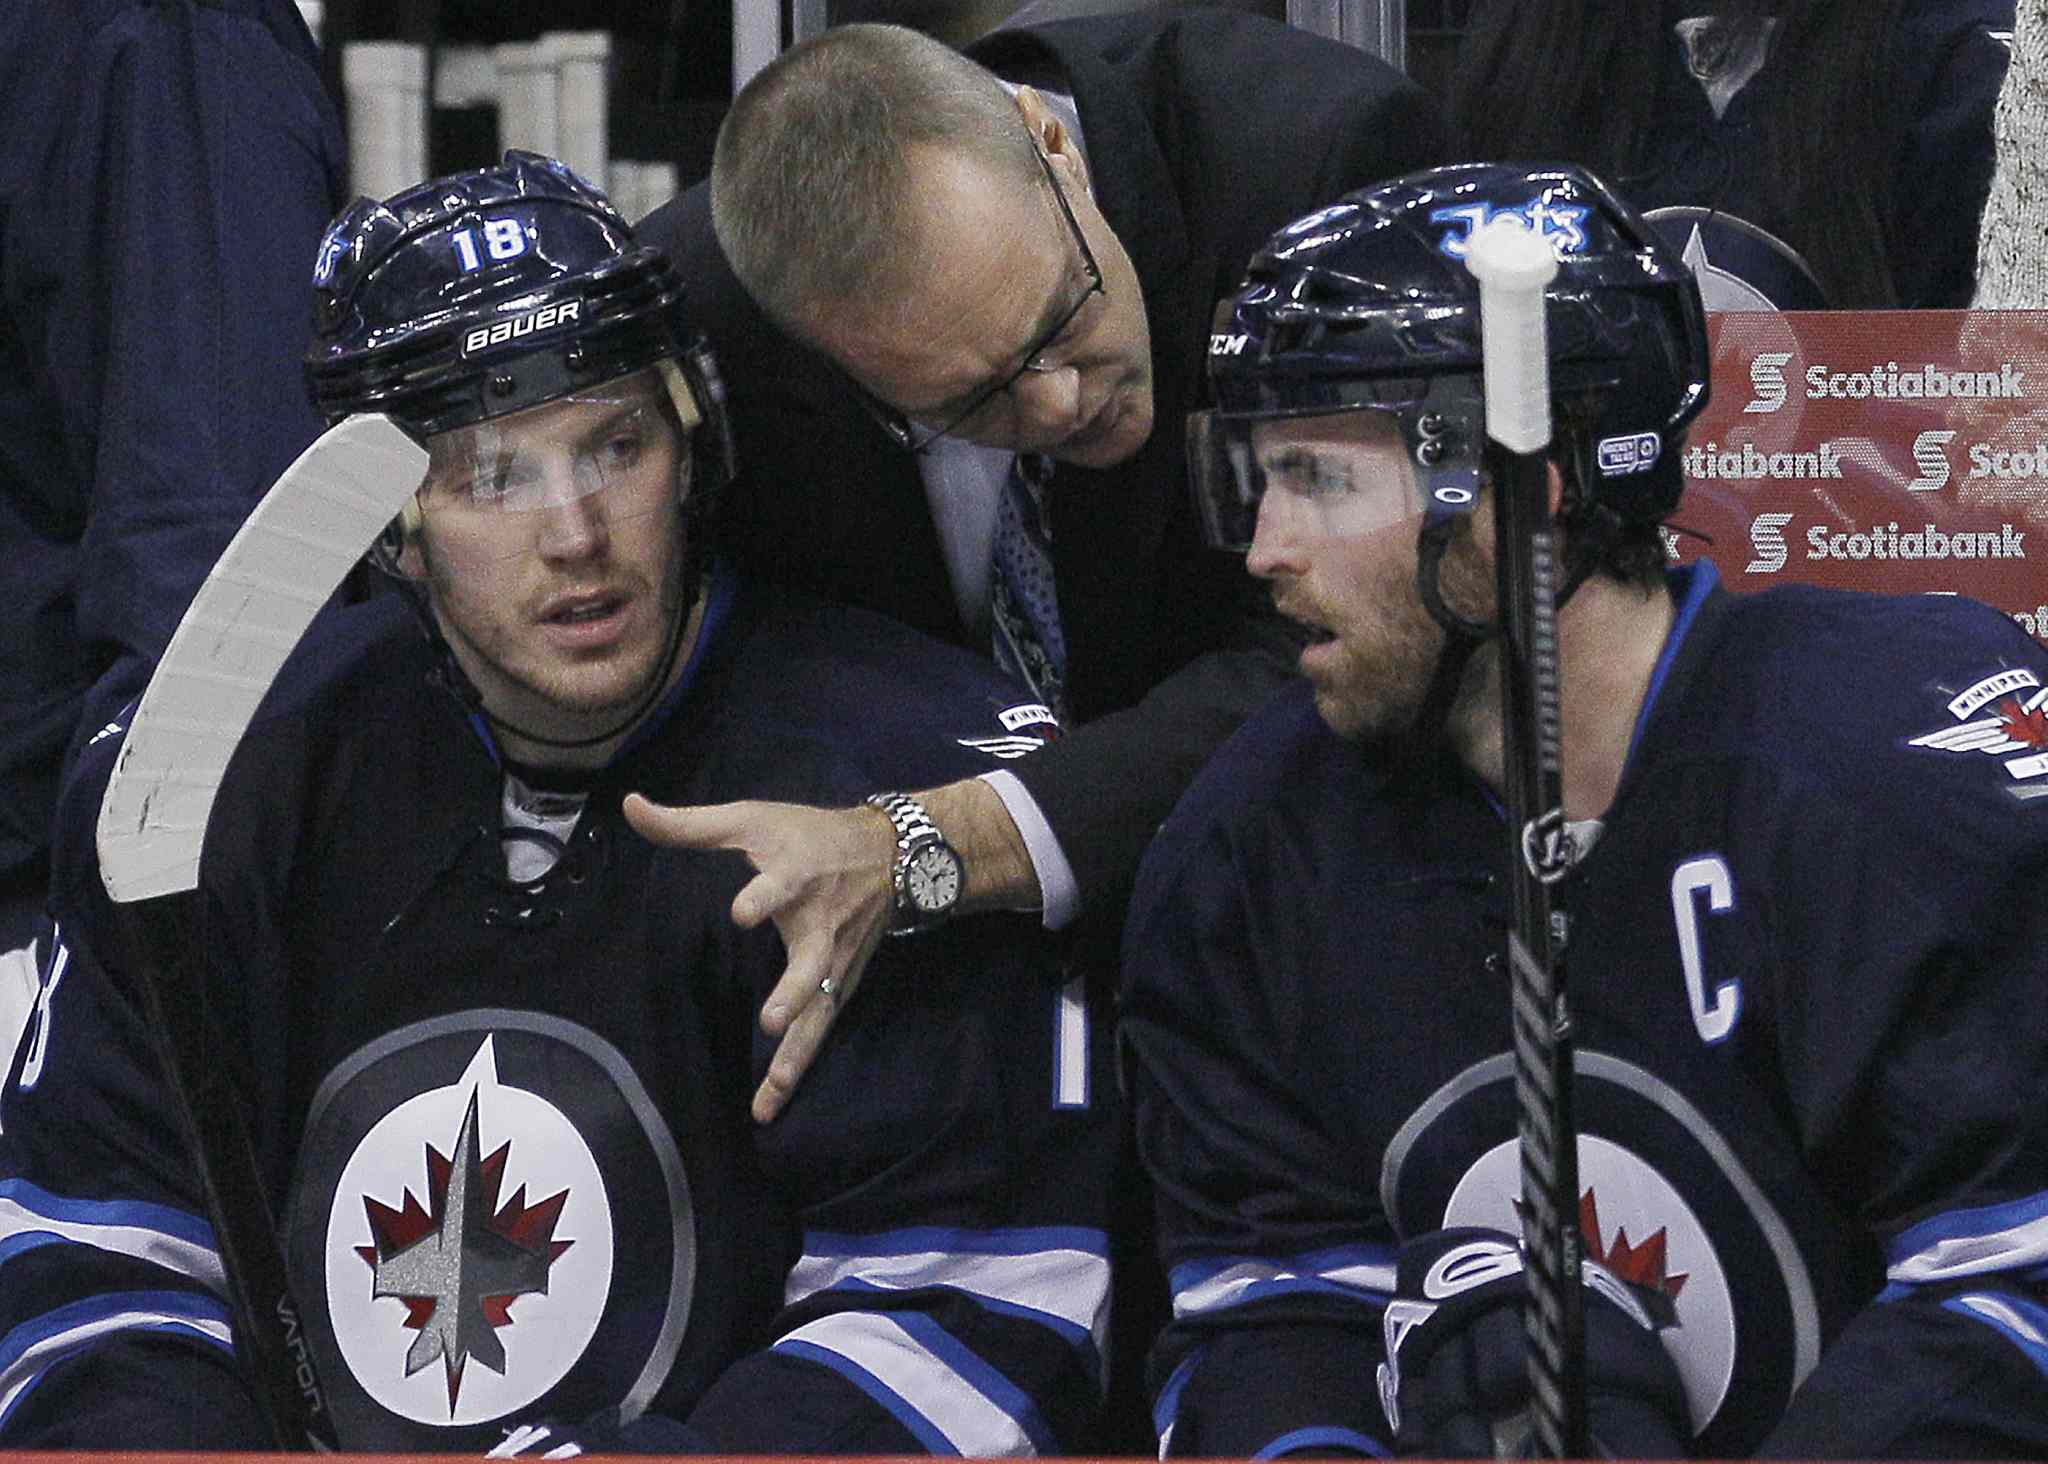 Winnipeg Jets head coach Paul Maurice started teaching on the bench in his first game Jan. 13 against Phoenix.